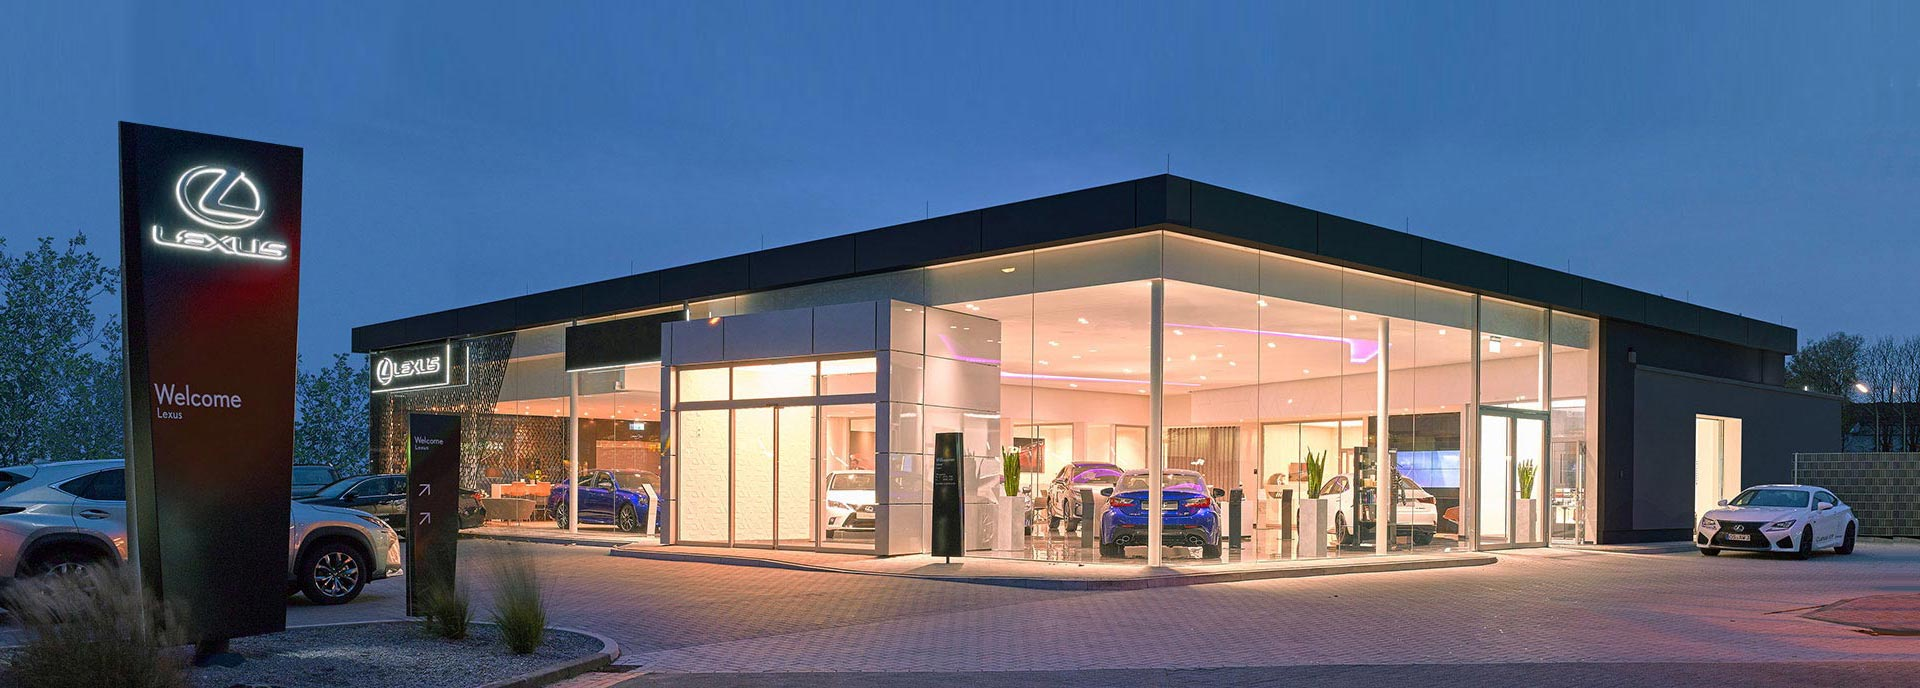 Een Lexus dealerpand in schemering